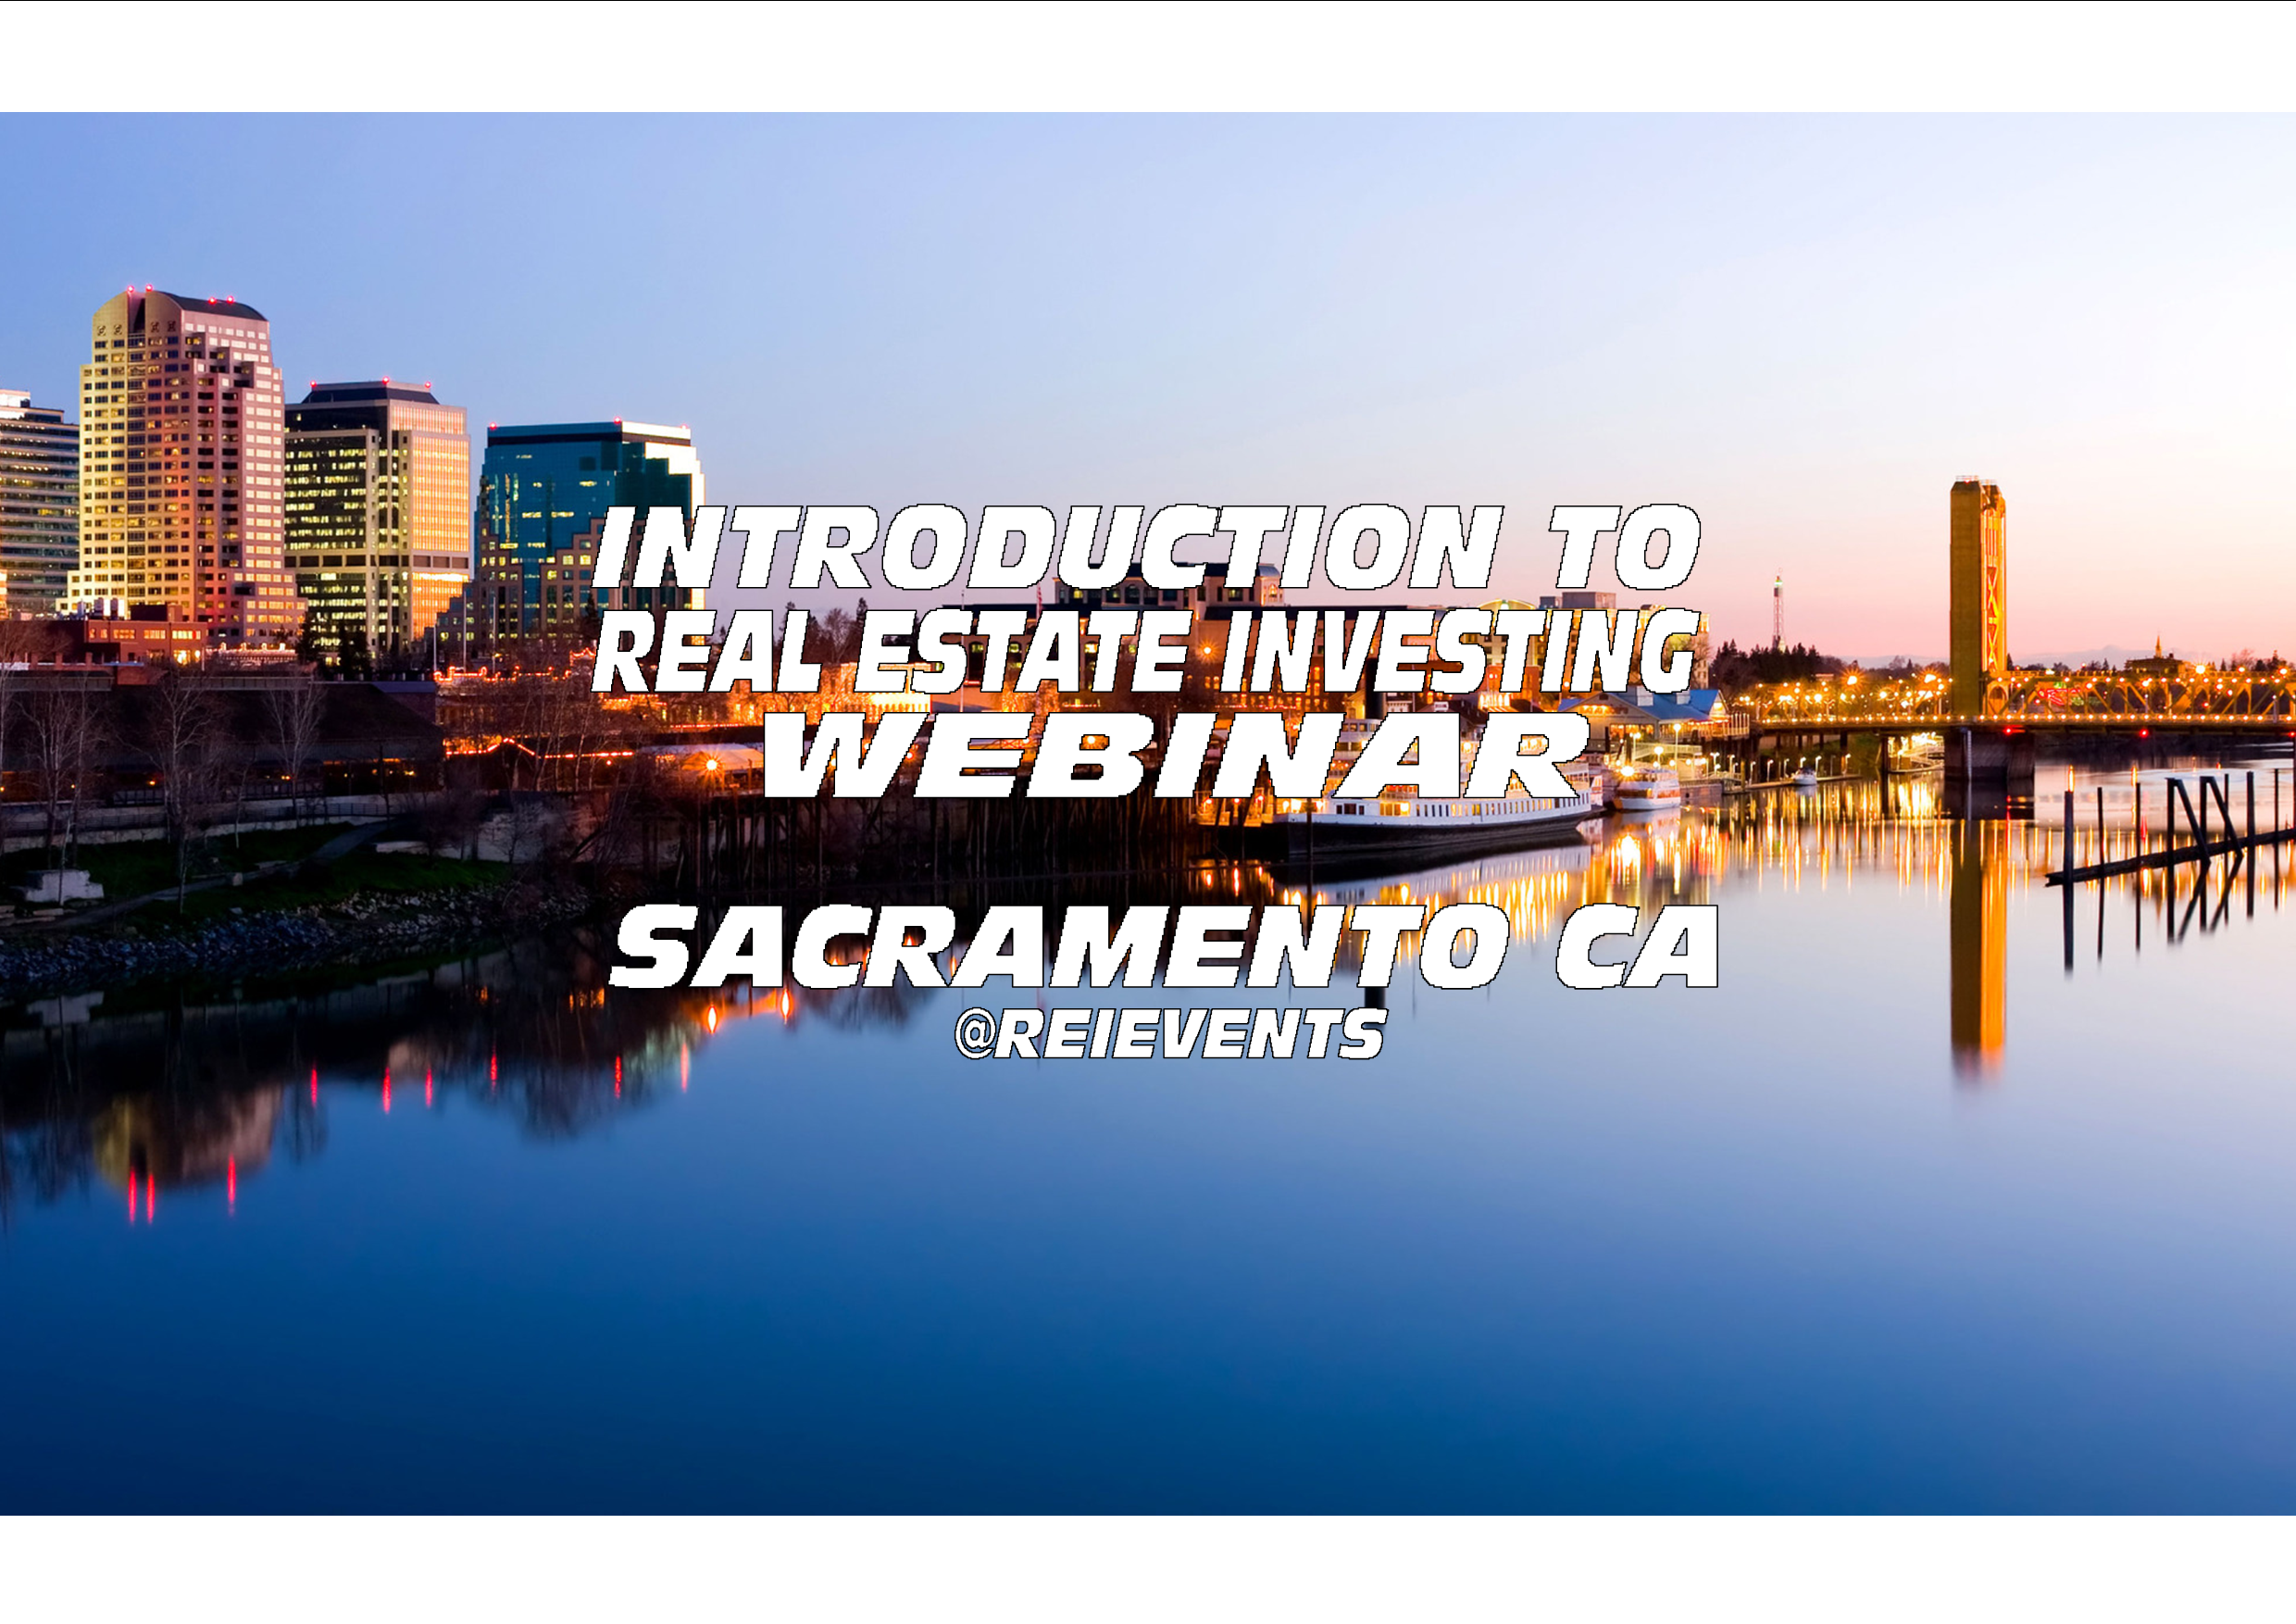 SACRAMENTO, CA INTRODUCTION TO REAL ESTATE INVESTING - WEBINAR